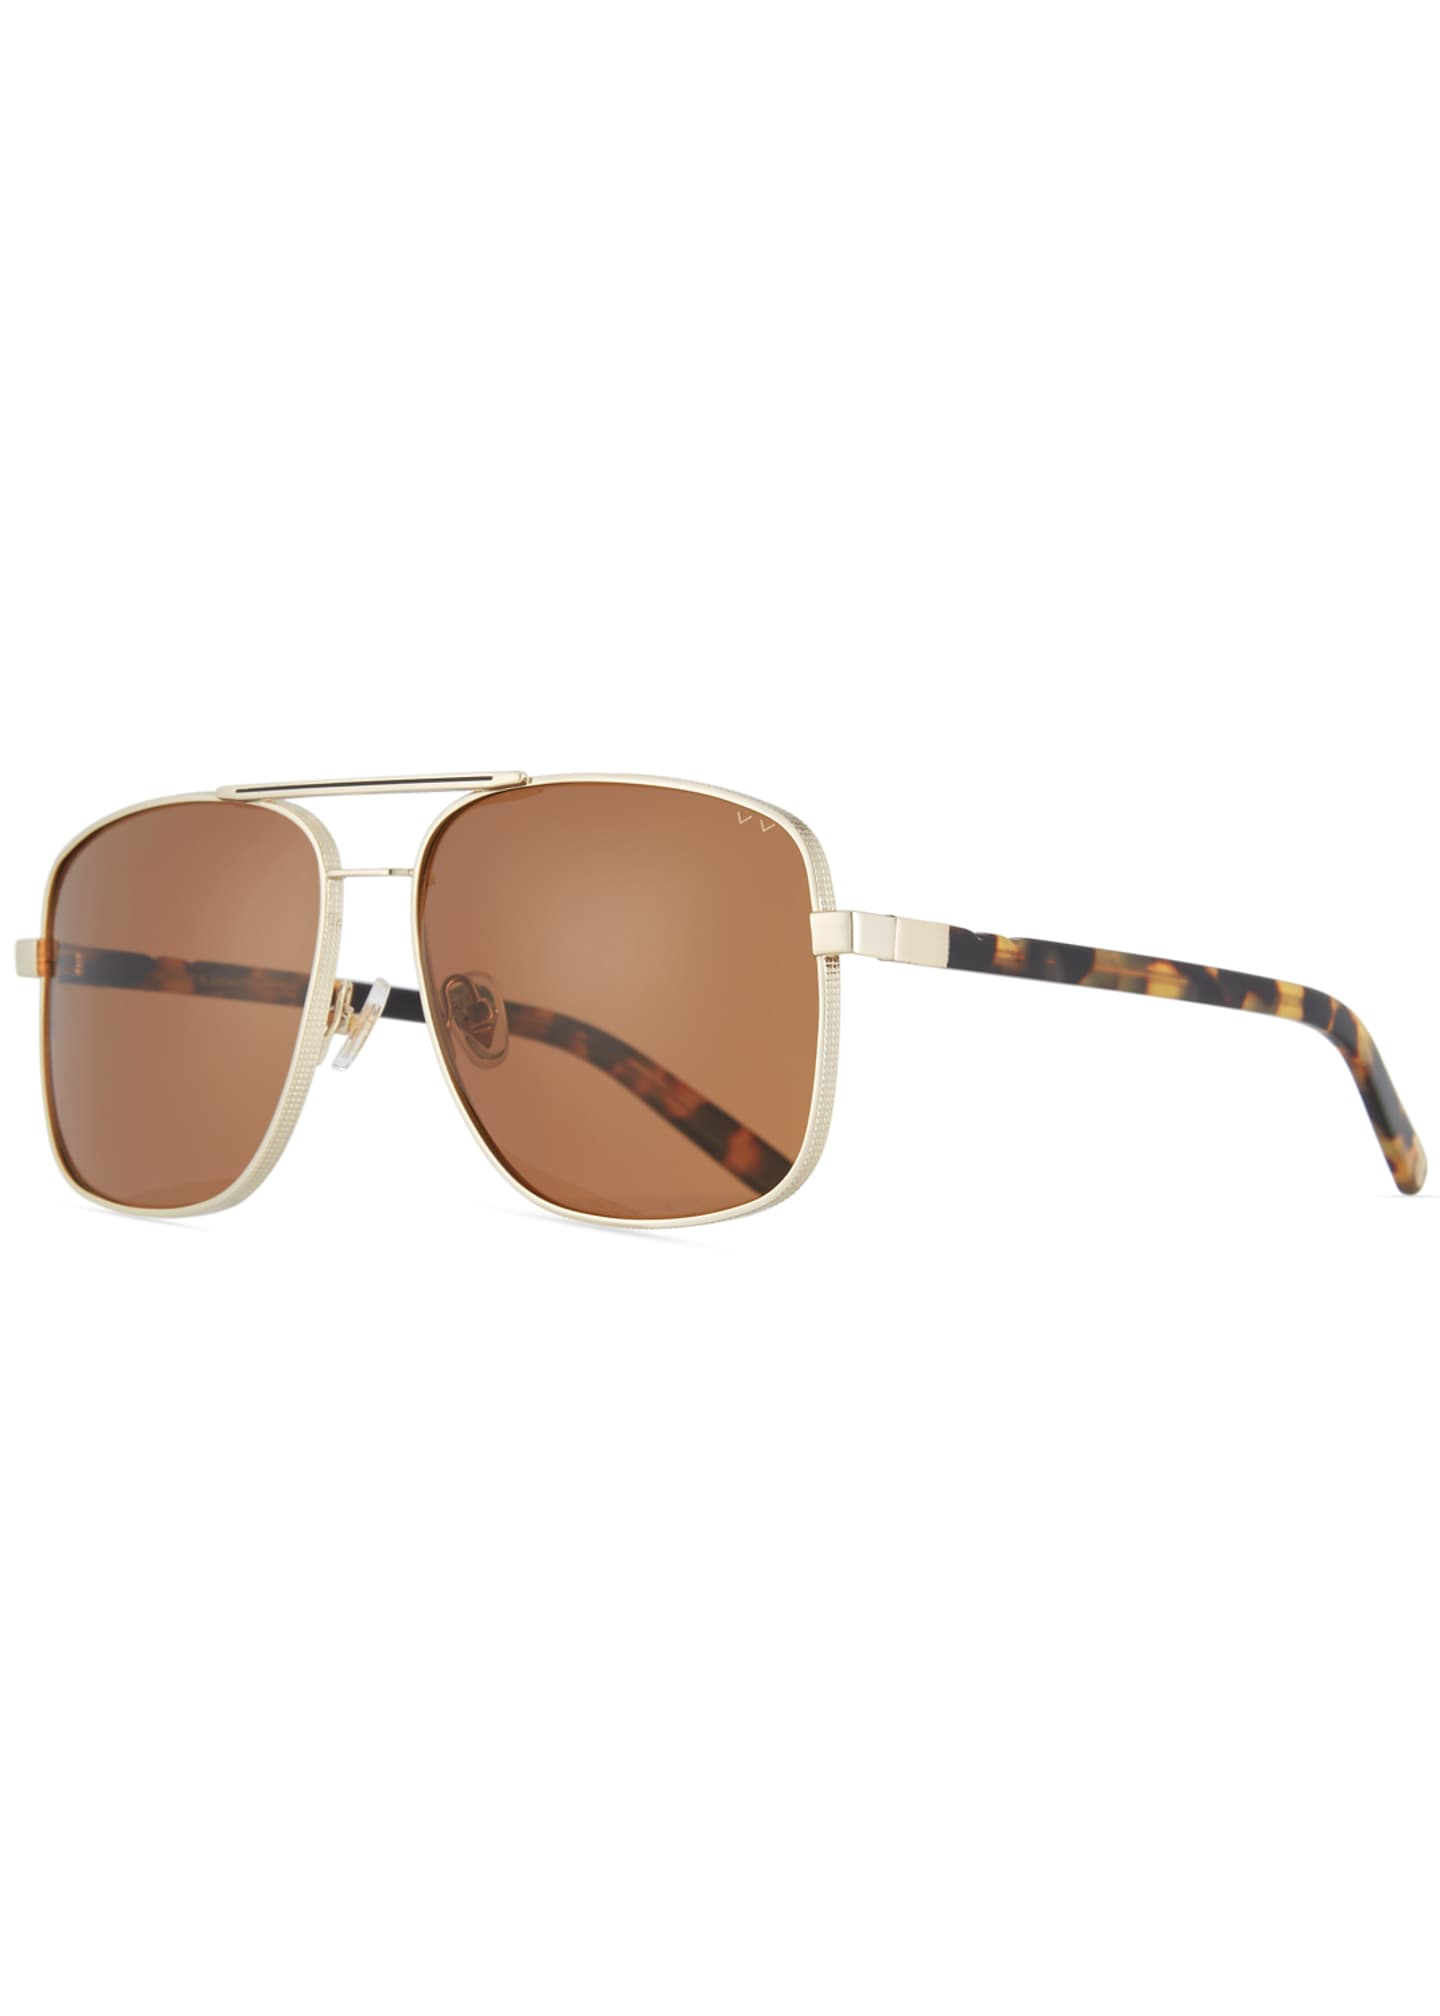 Pared Eyewear Uptown & Downtown Square Sunglasses